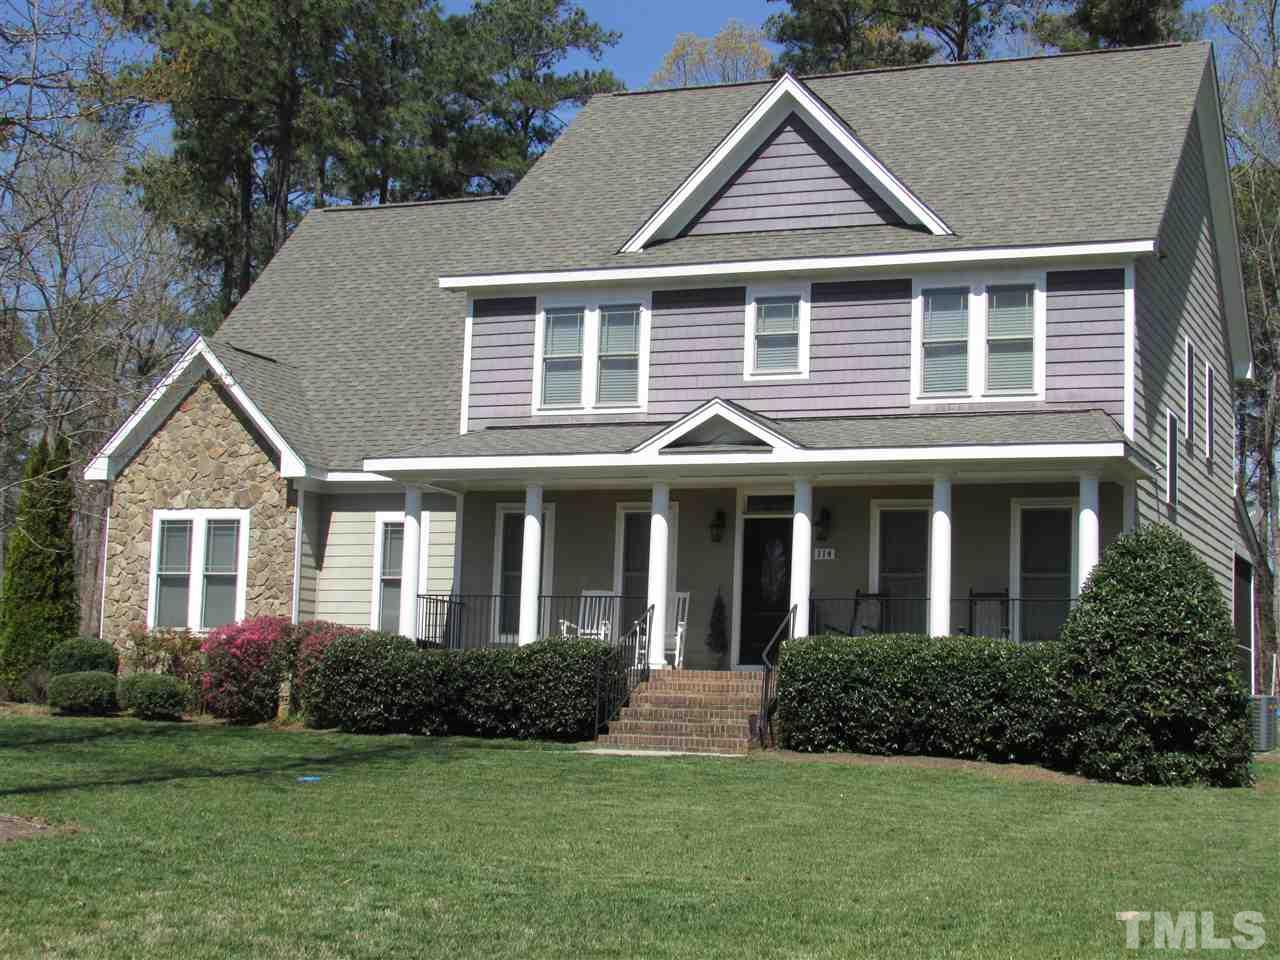 114 Camille Cir, Youngsville, NC